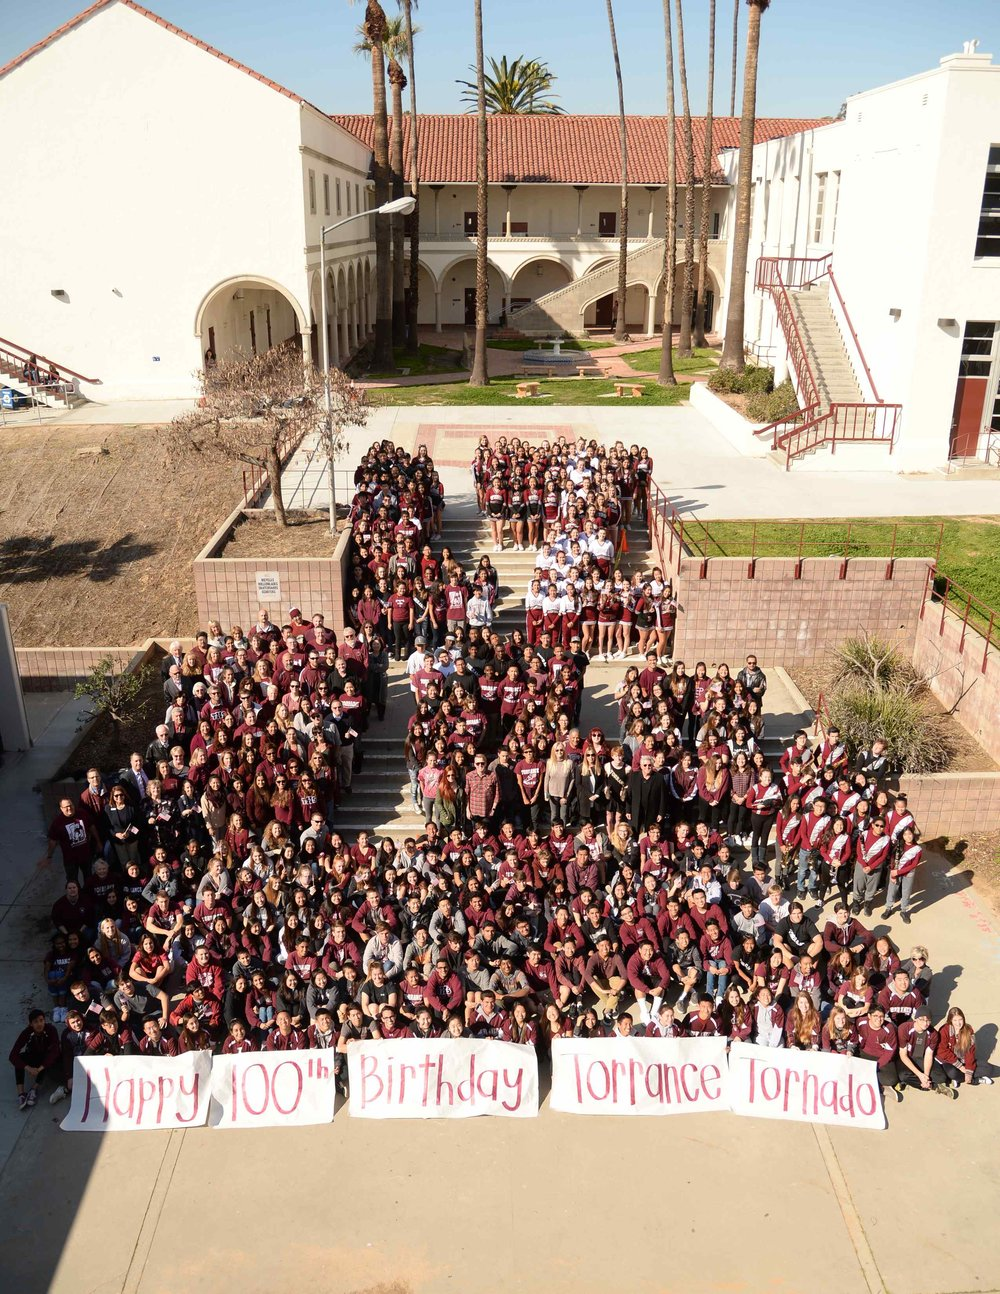 Torrance High School students celebrate the 100th Birthday of the Torrance Tornado.